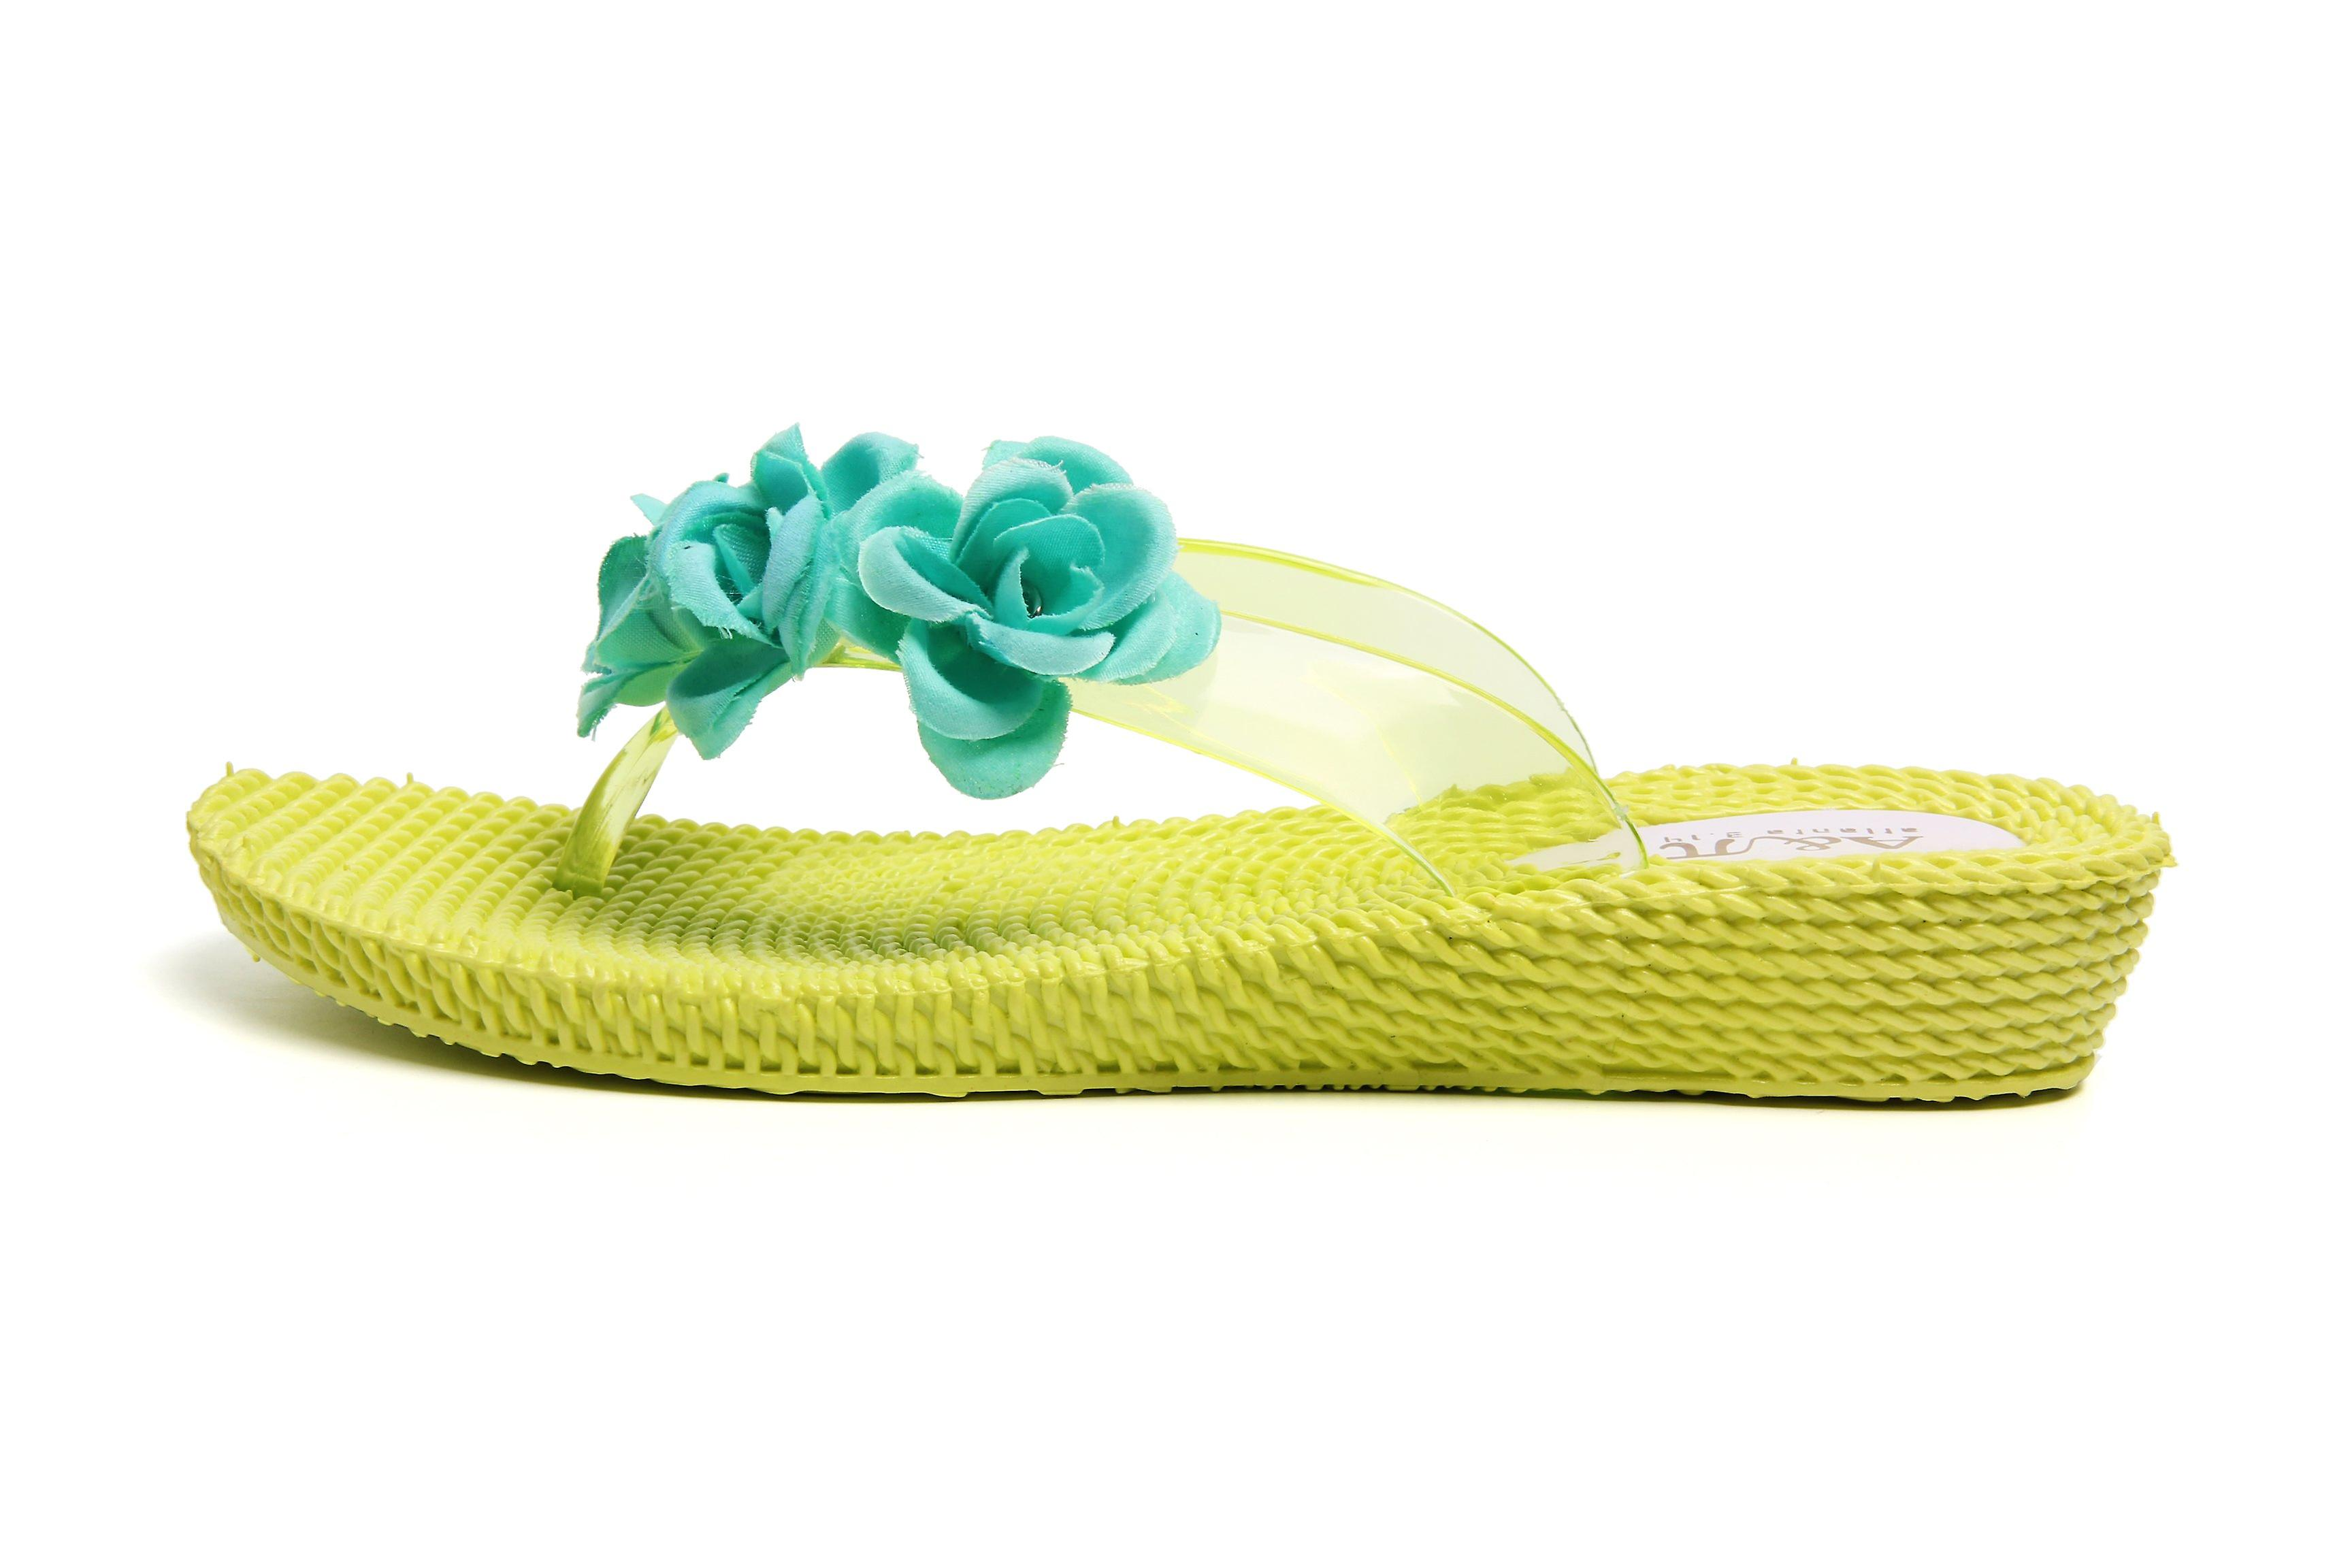 Atlantis Shoes Women Supportive Cushioned Comfortable Sandals Flip Flops Three Flowers Yellow-aquagreen